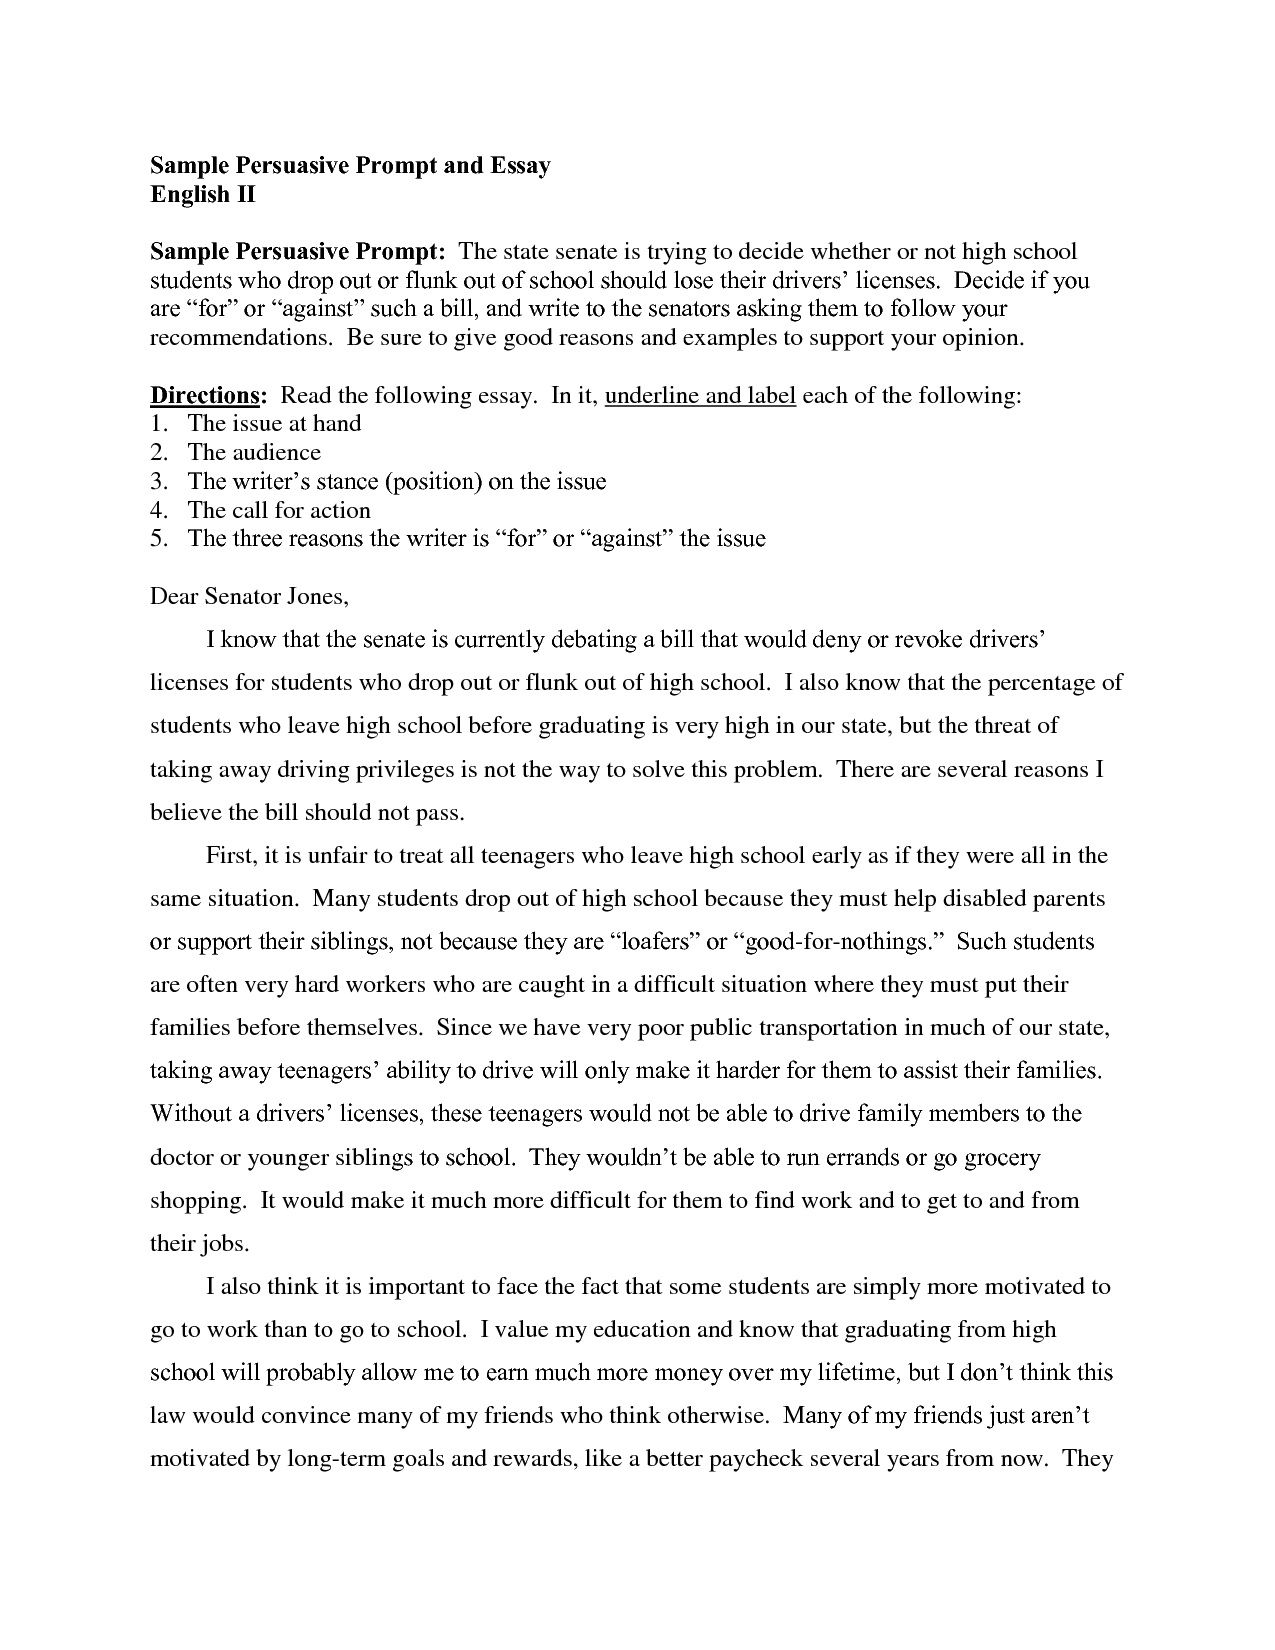 Essay Thesis Statement  Thesis Statements Examples For Argumentative Essays also Research Paper Essays Samples Of Persuasive Essays For High School Students  Proposal Essay Topics